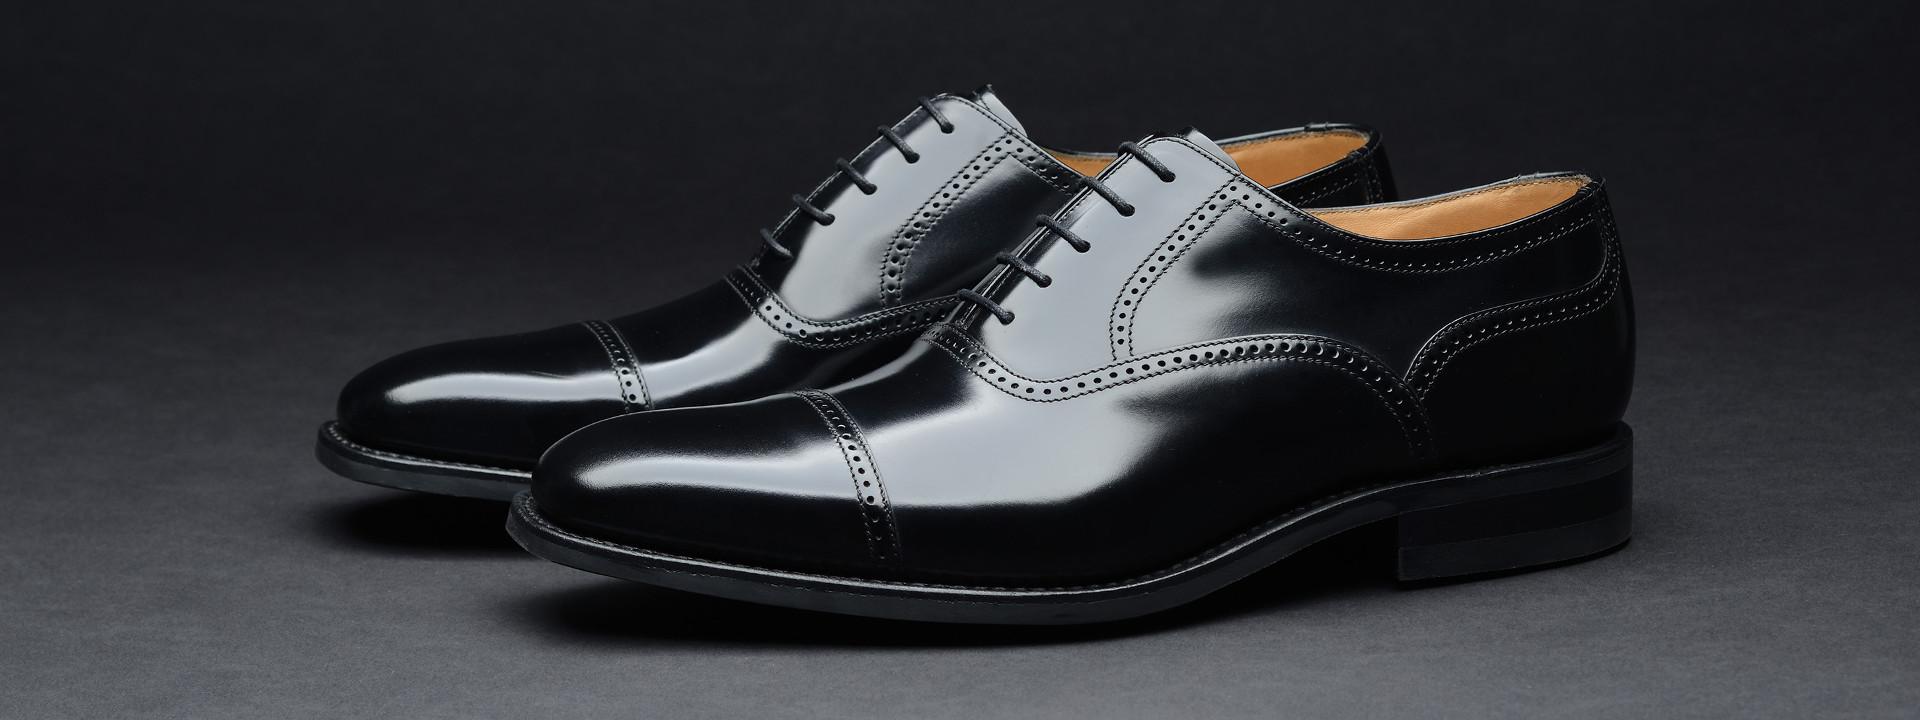 Give A treat To Your Feet With The Help of Scentra Shoes!!